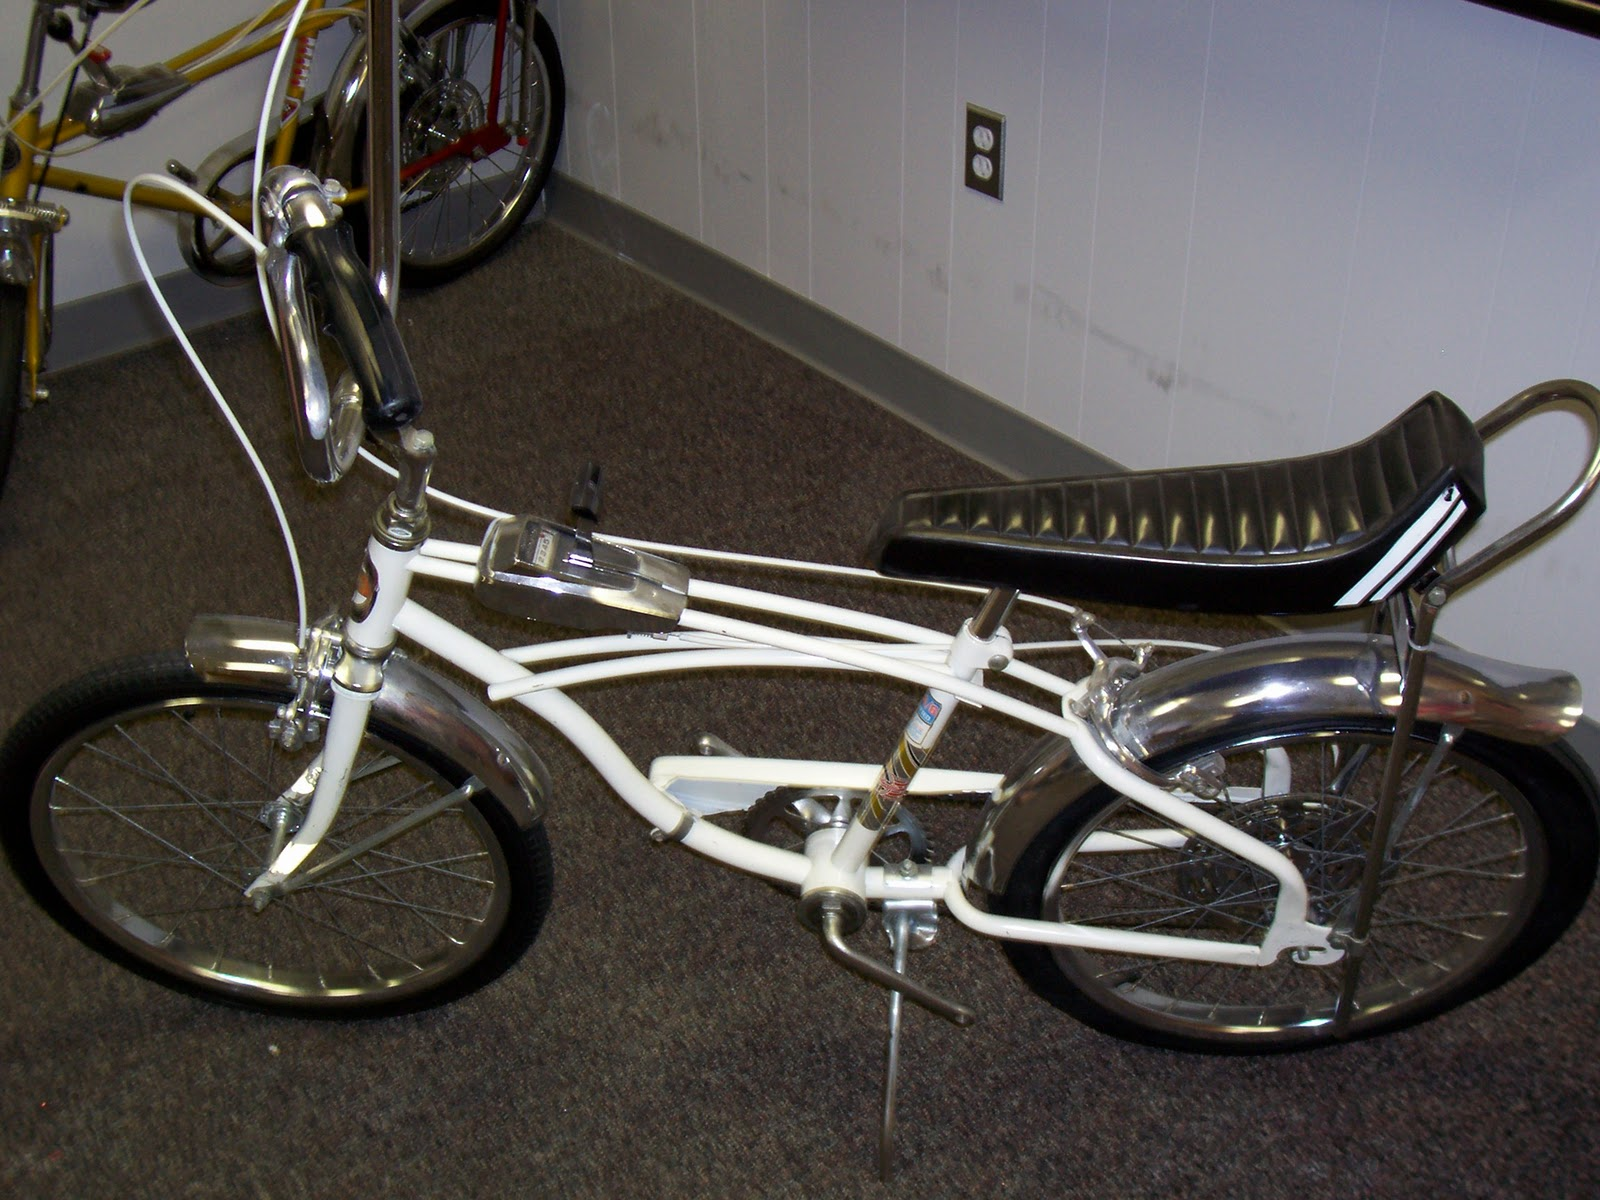 201a7de5c4b the raleigh chopper blog steve: COLUMBIA 5 SPEED